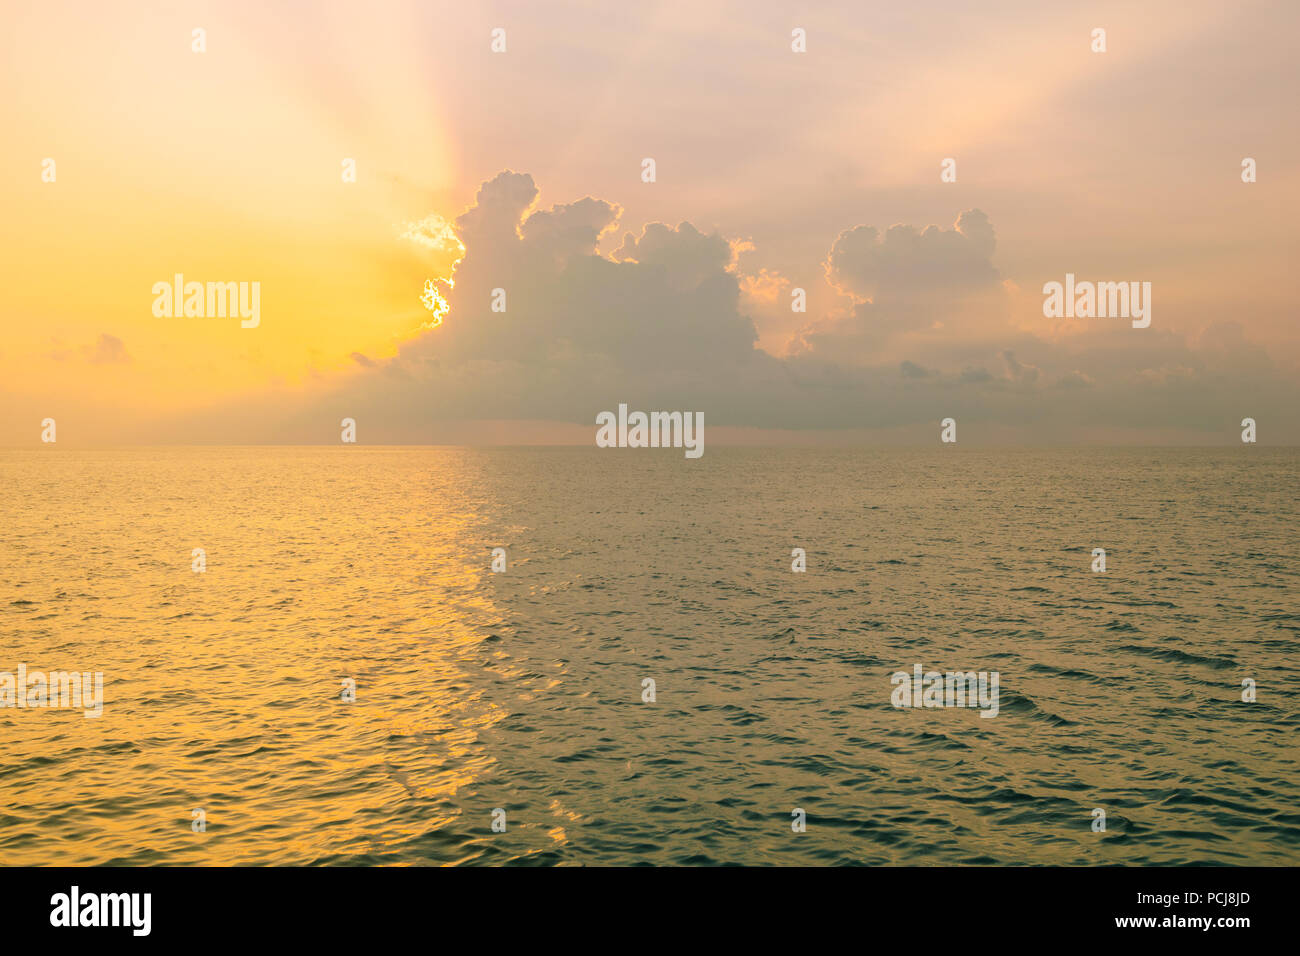 The sun is rising being storm clouds and filtering through, over the Andaman sea in Thailand. Stock Photo